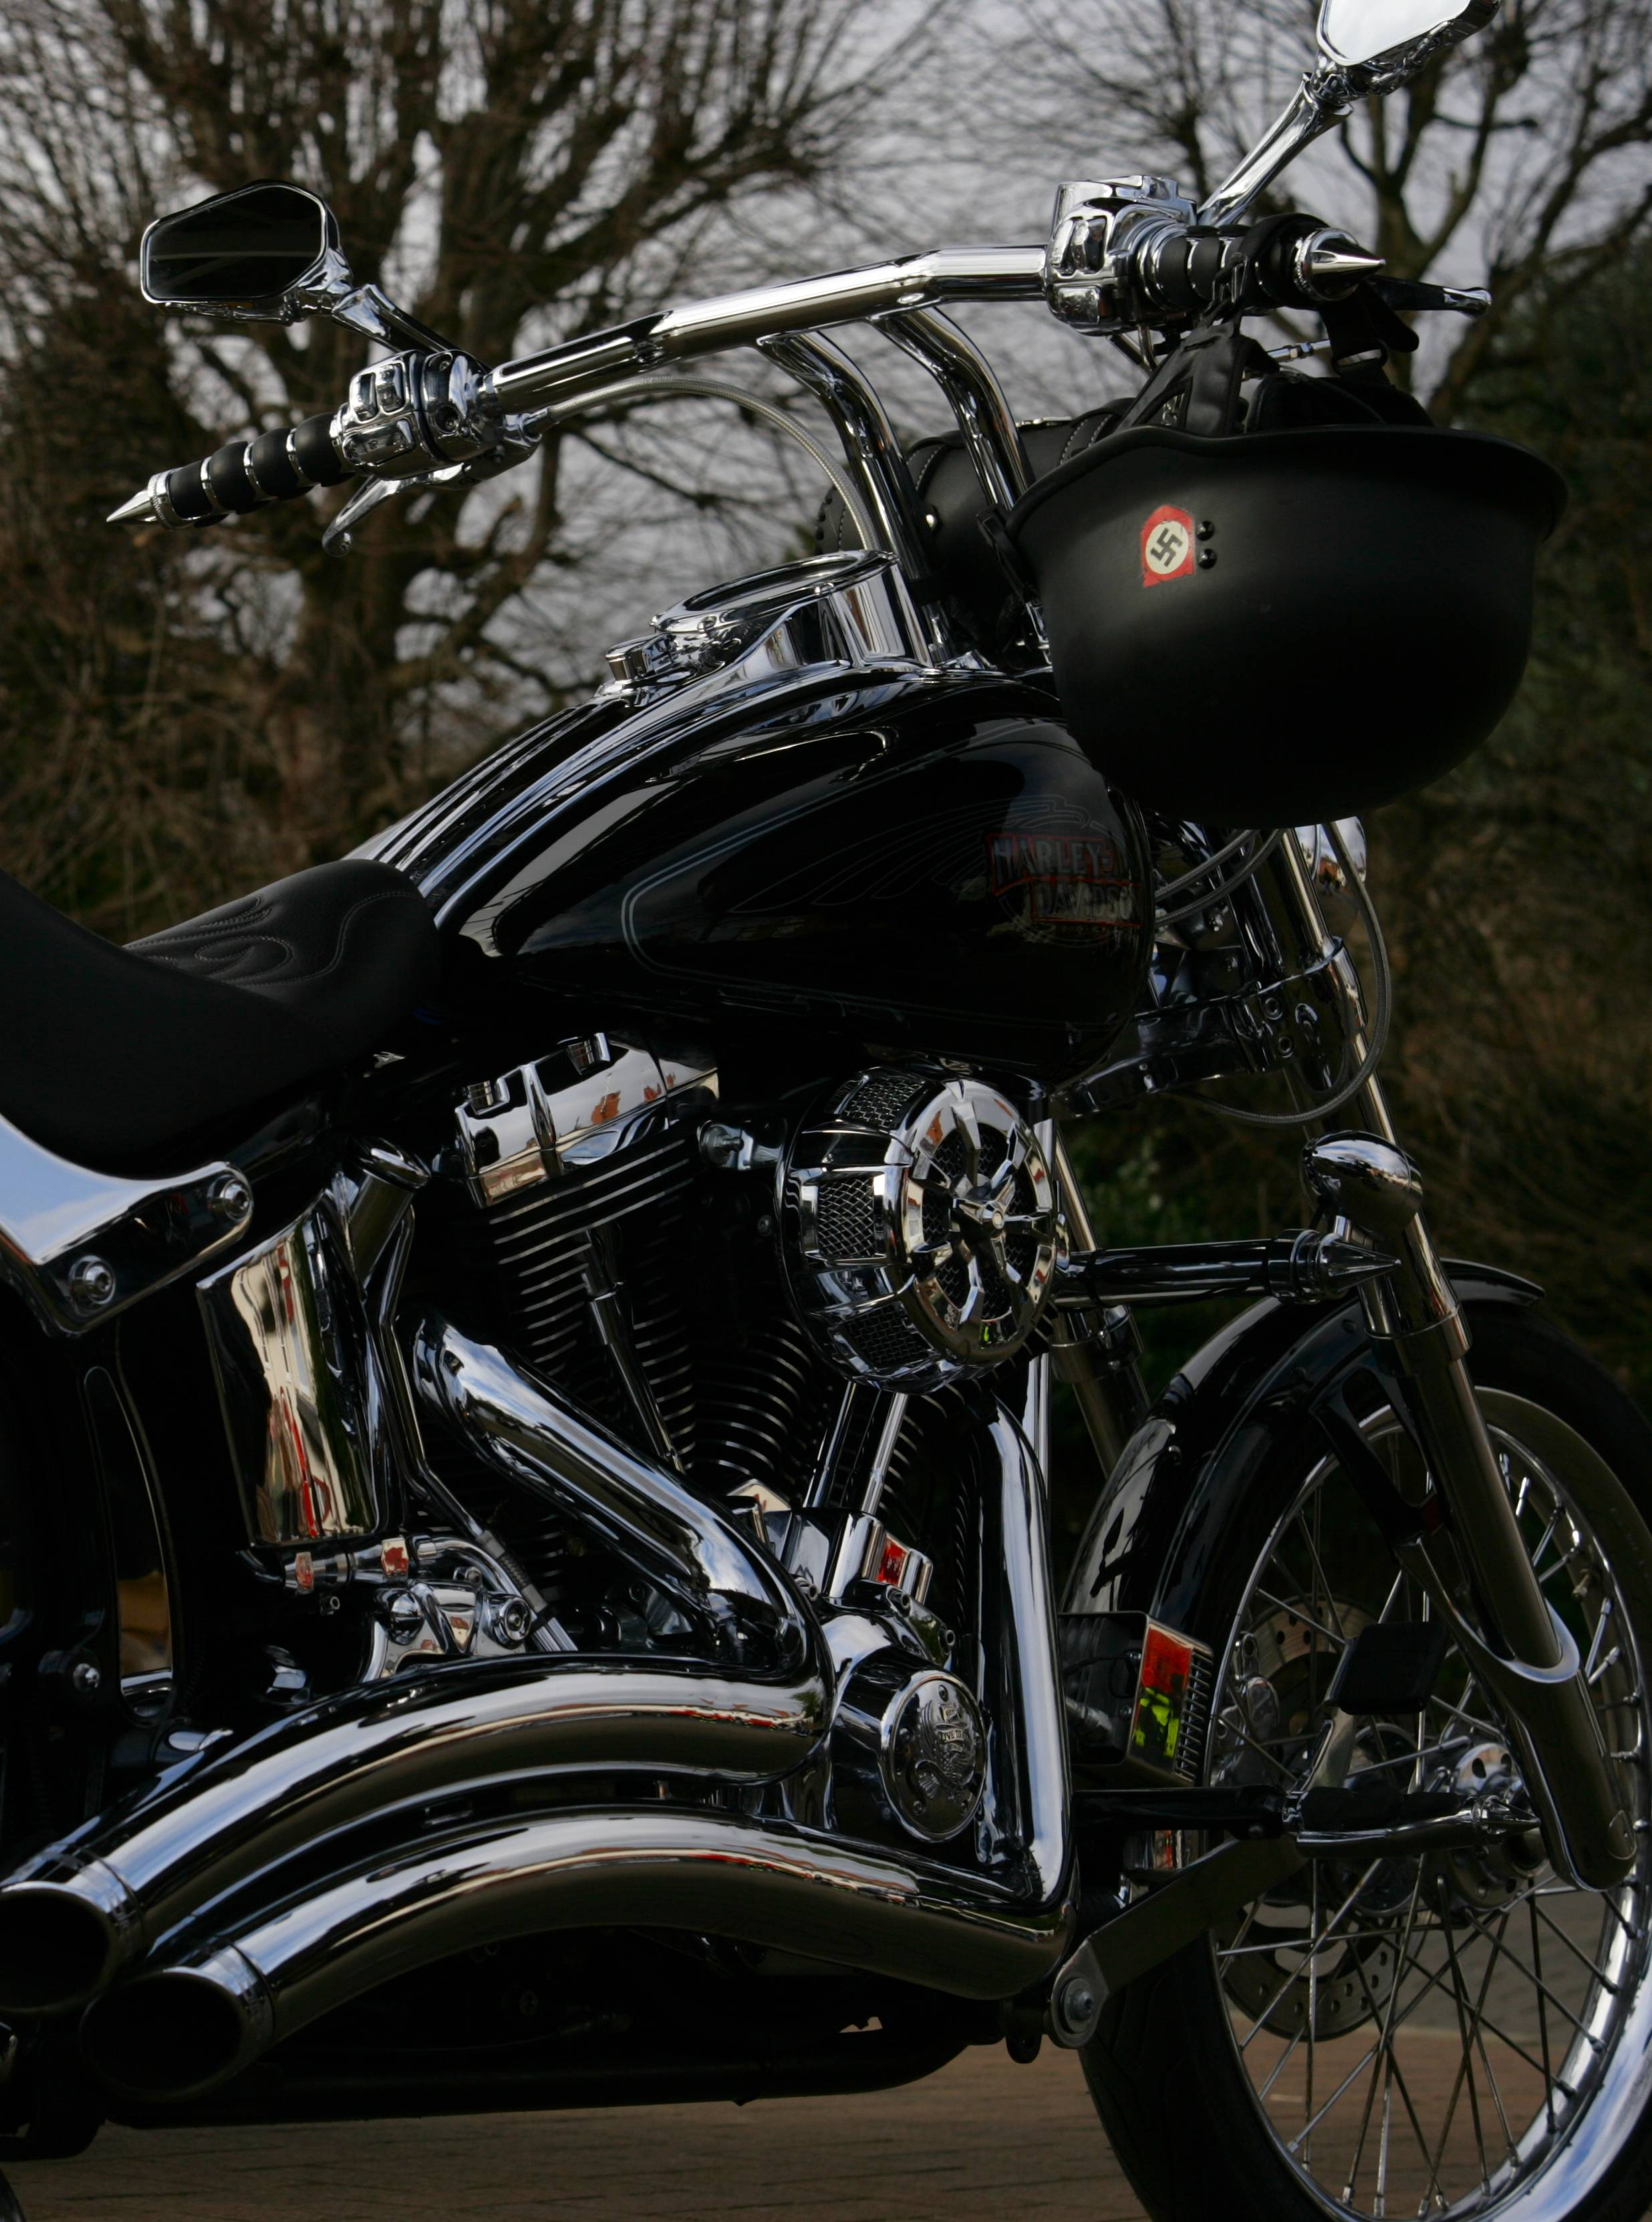 Rockers - Mods - Bikers  ' subculture series image #1 '